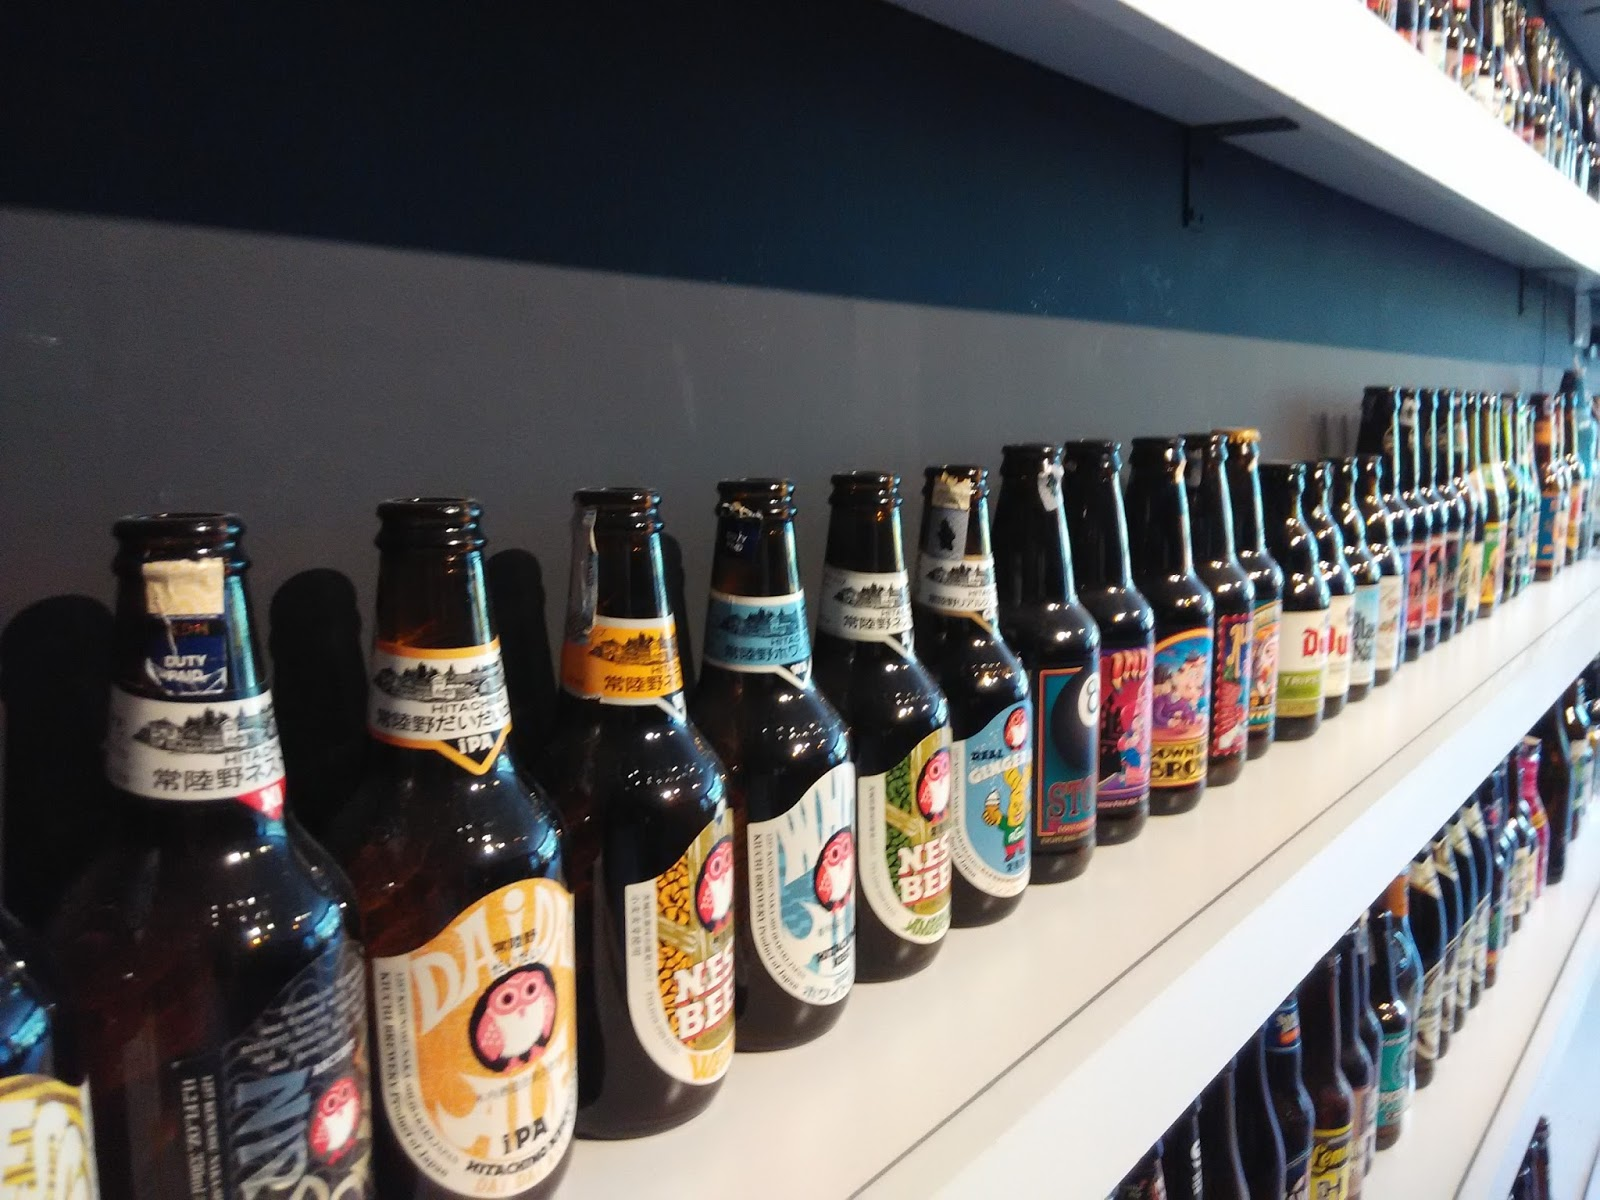 Shelf Display With A Glow Of Light Showcasing Many Handcraft Beer Bottles And Wines From All Around The World Just Like Compelling Art On